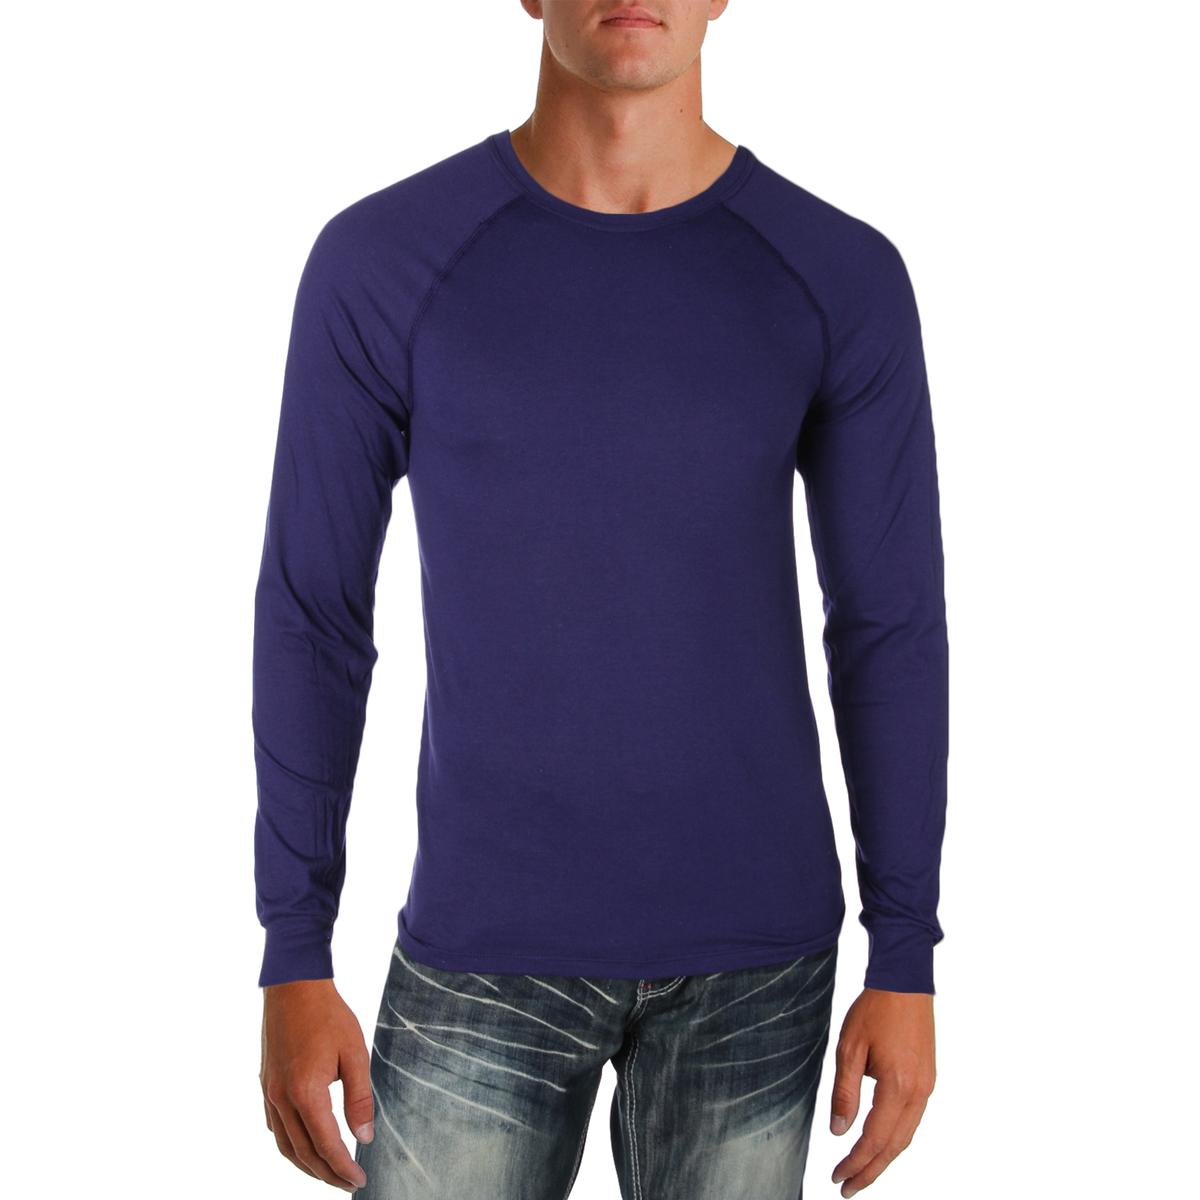 Champion-Men-039-s-Fitness-Long-Sleeve-Athletic-Champ-Tee-Workout-Shirt-BHFO